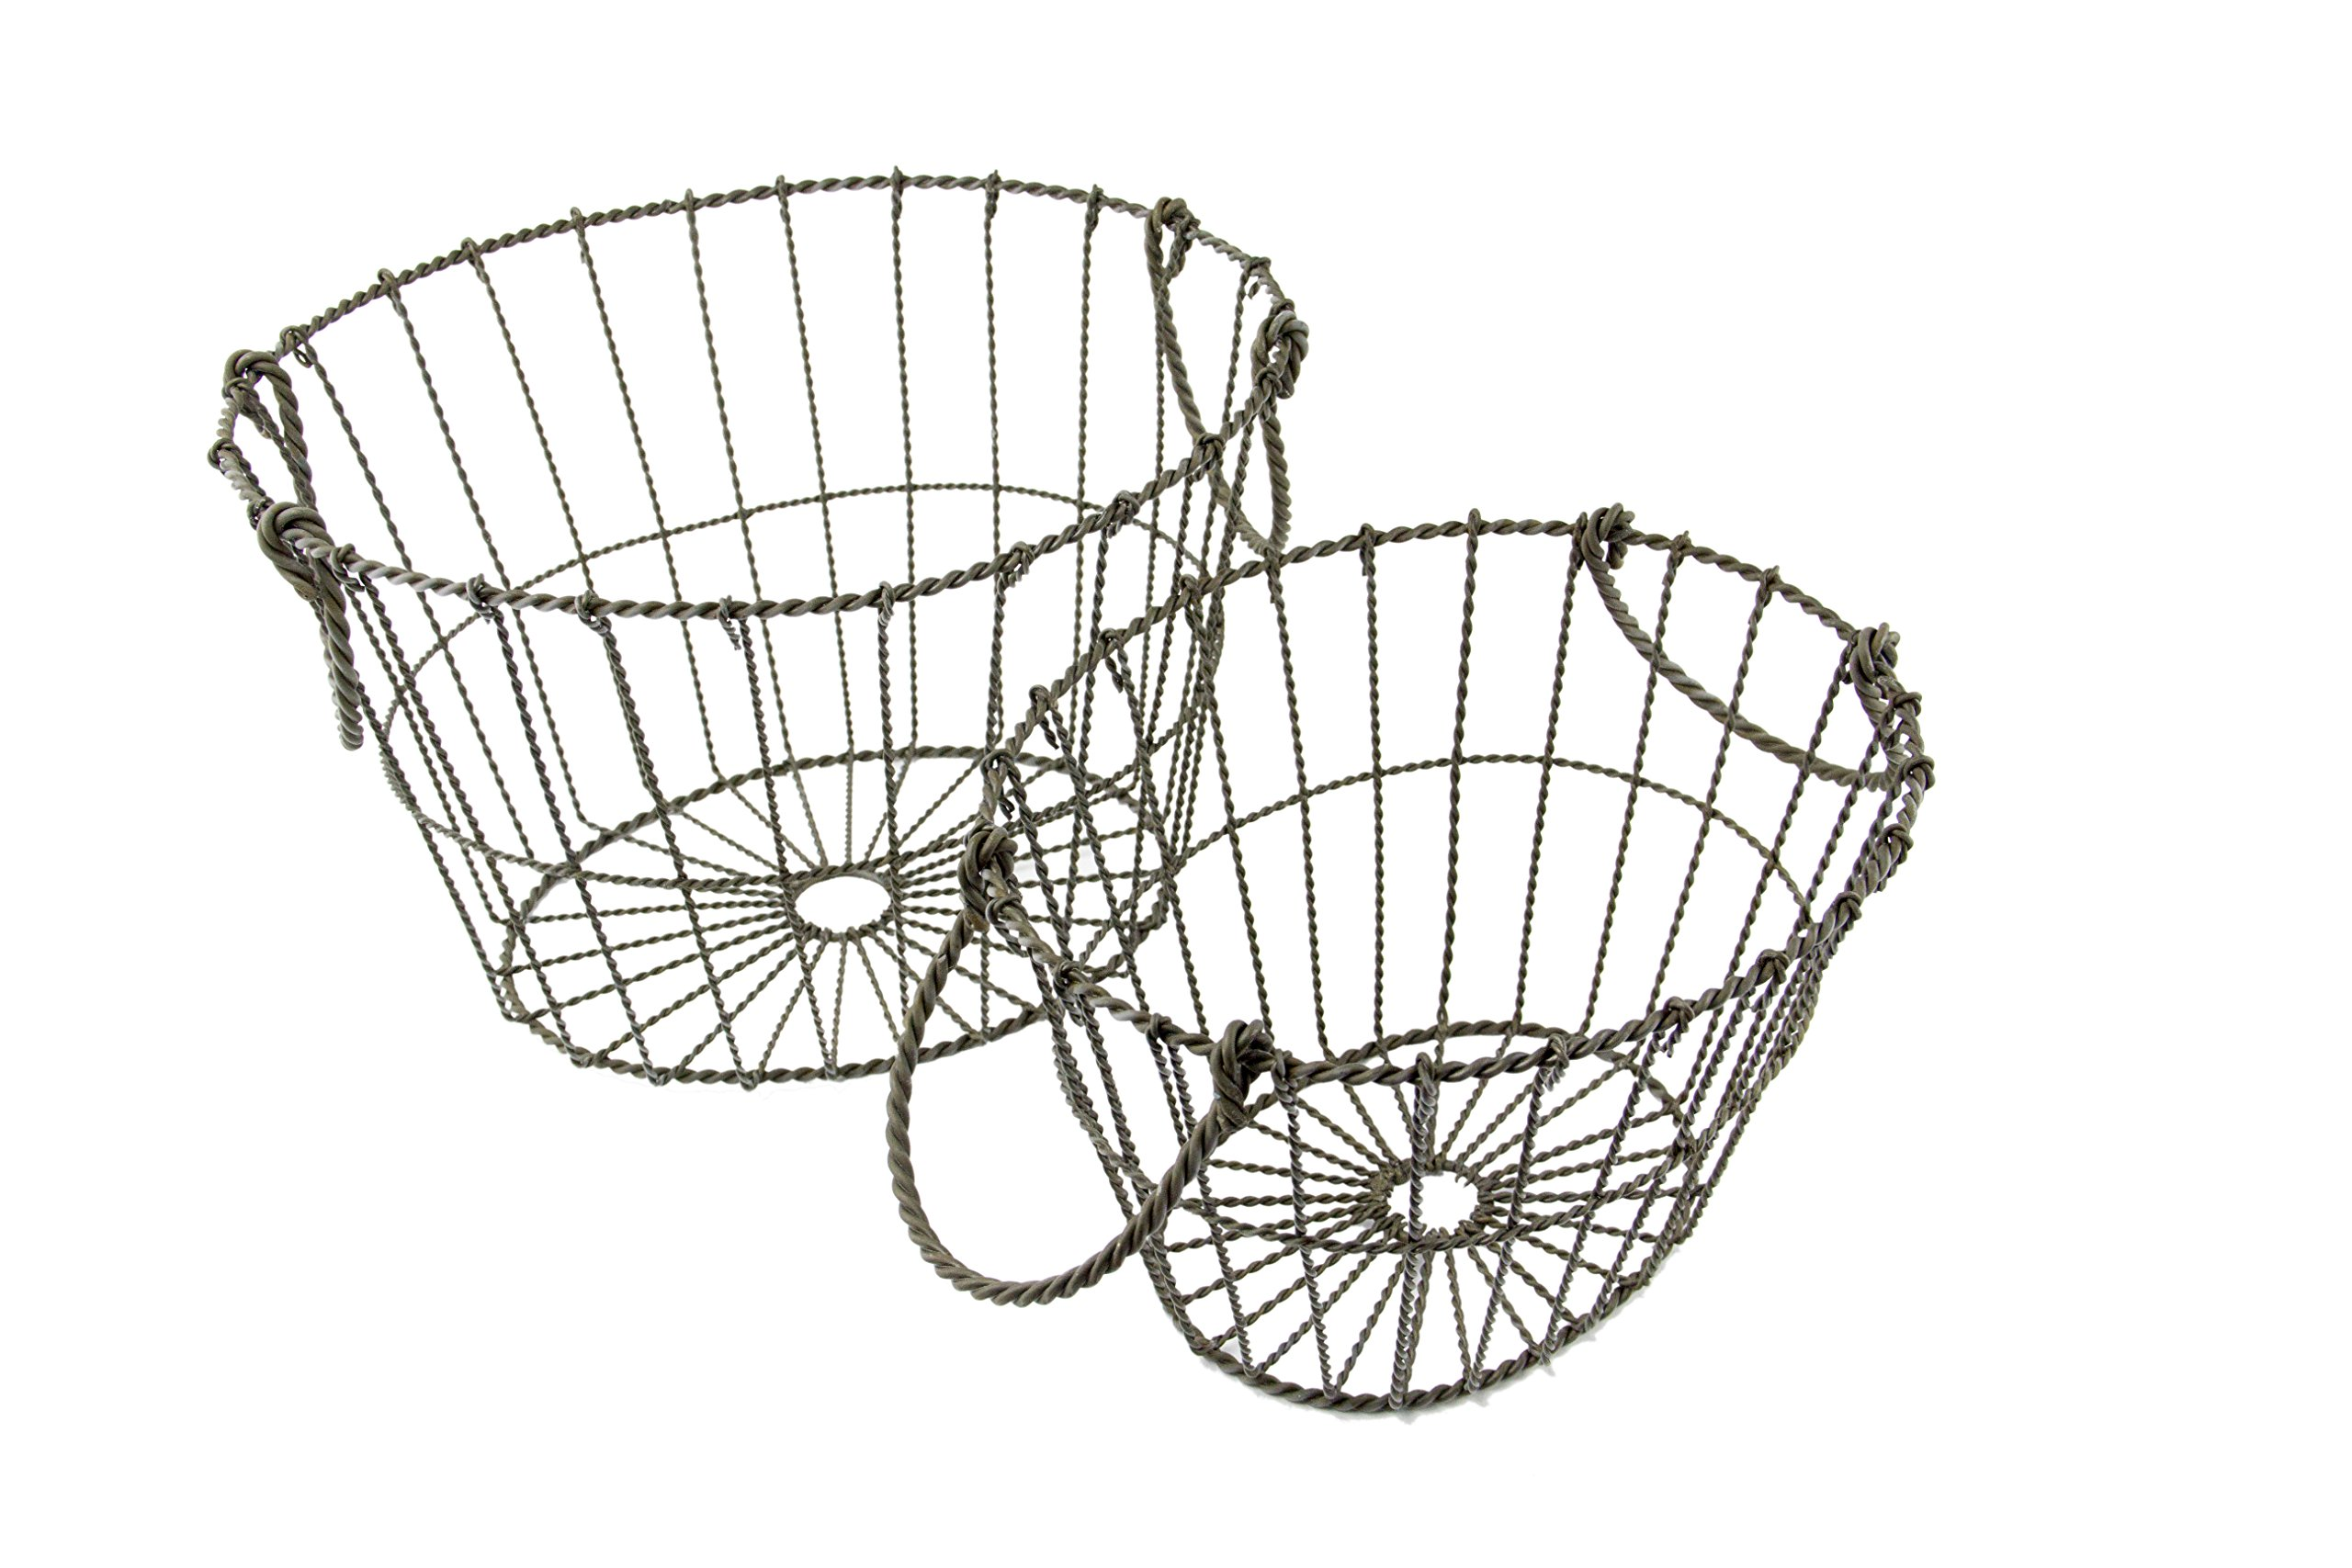 Oval Metal Wire Country Style Shabby Chic Basket with Handles, Set of 2 - Small and Large